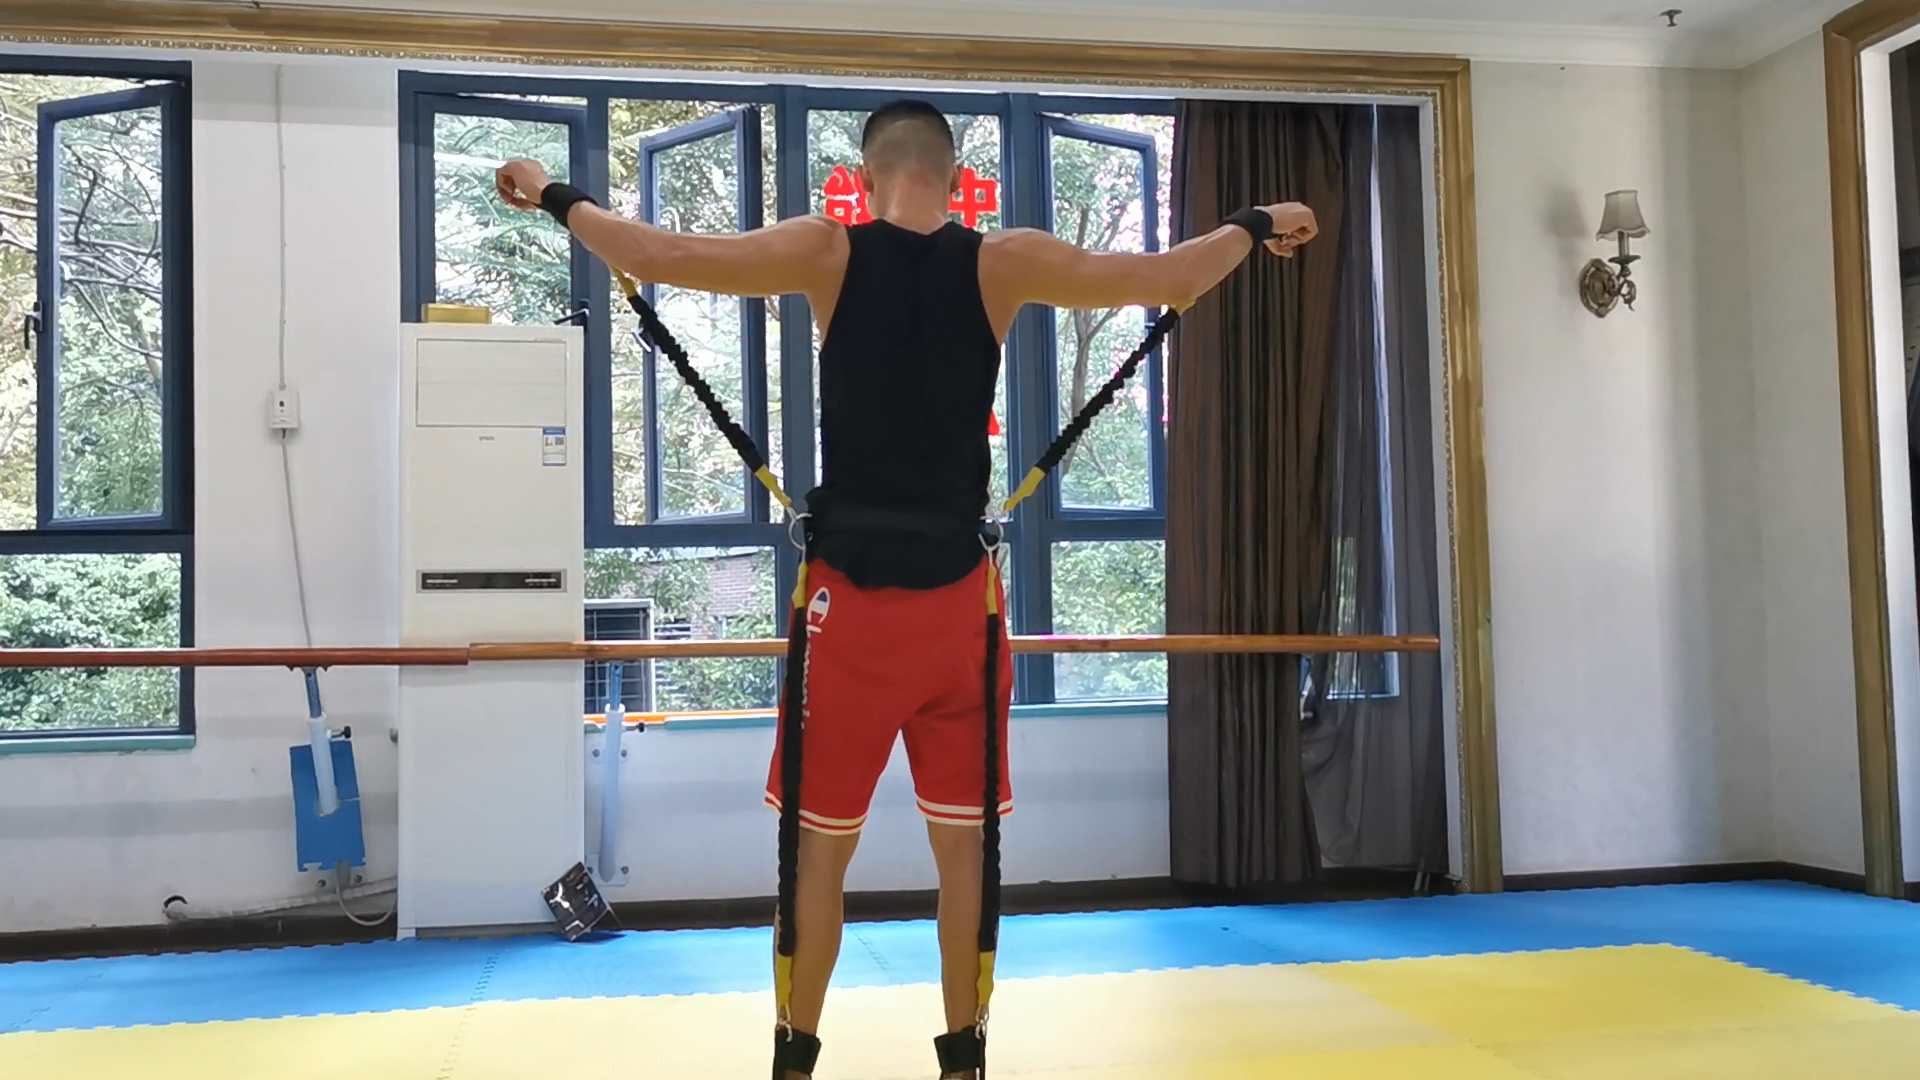 resistance band for tennis for jumping training physical training speed training